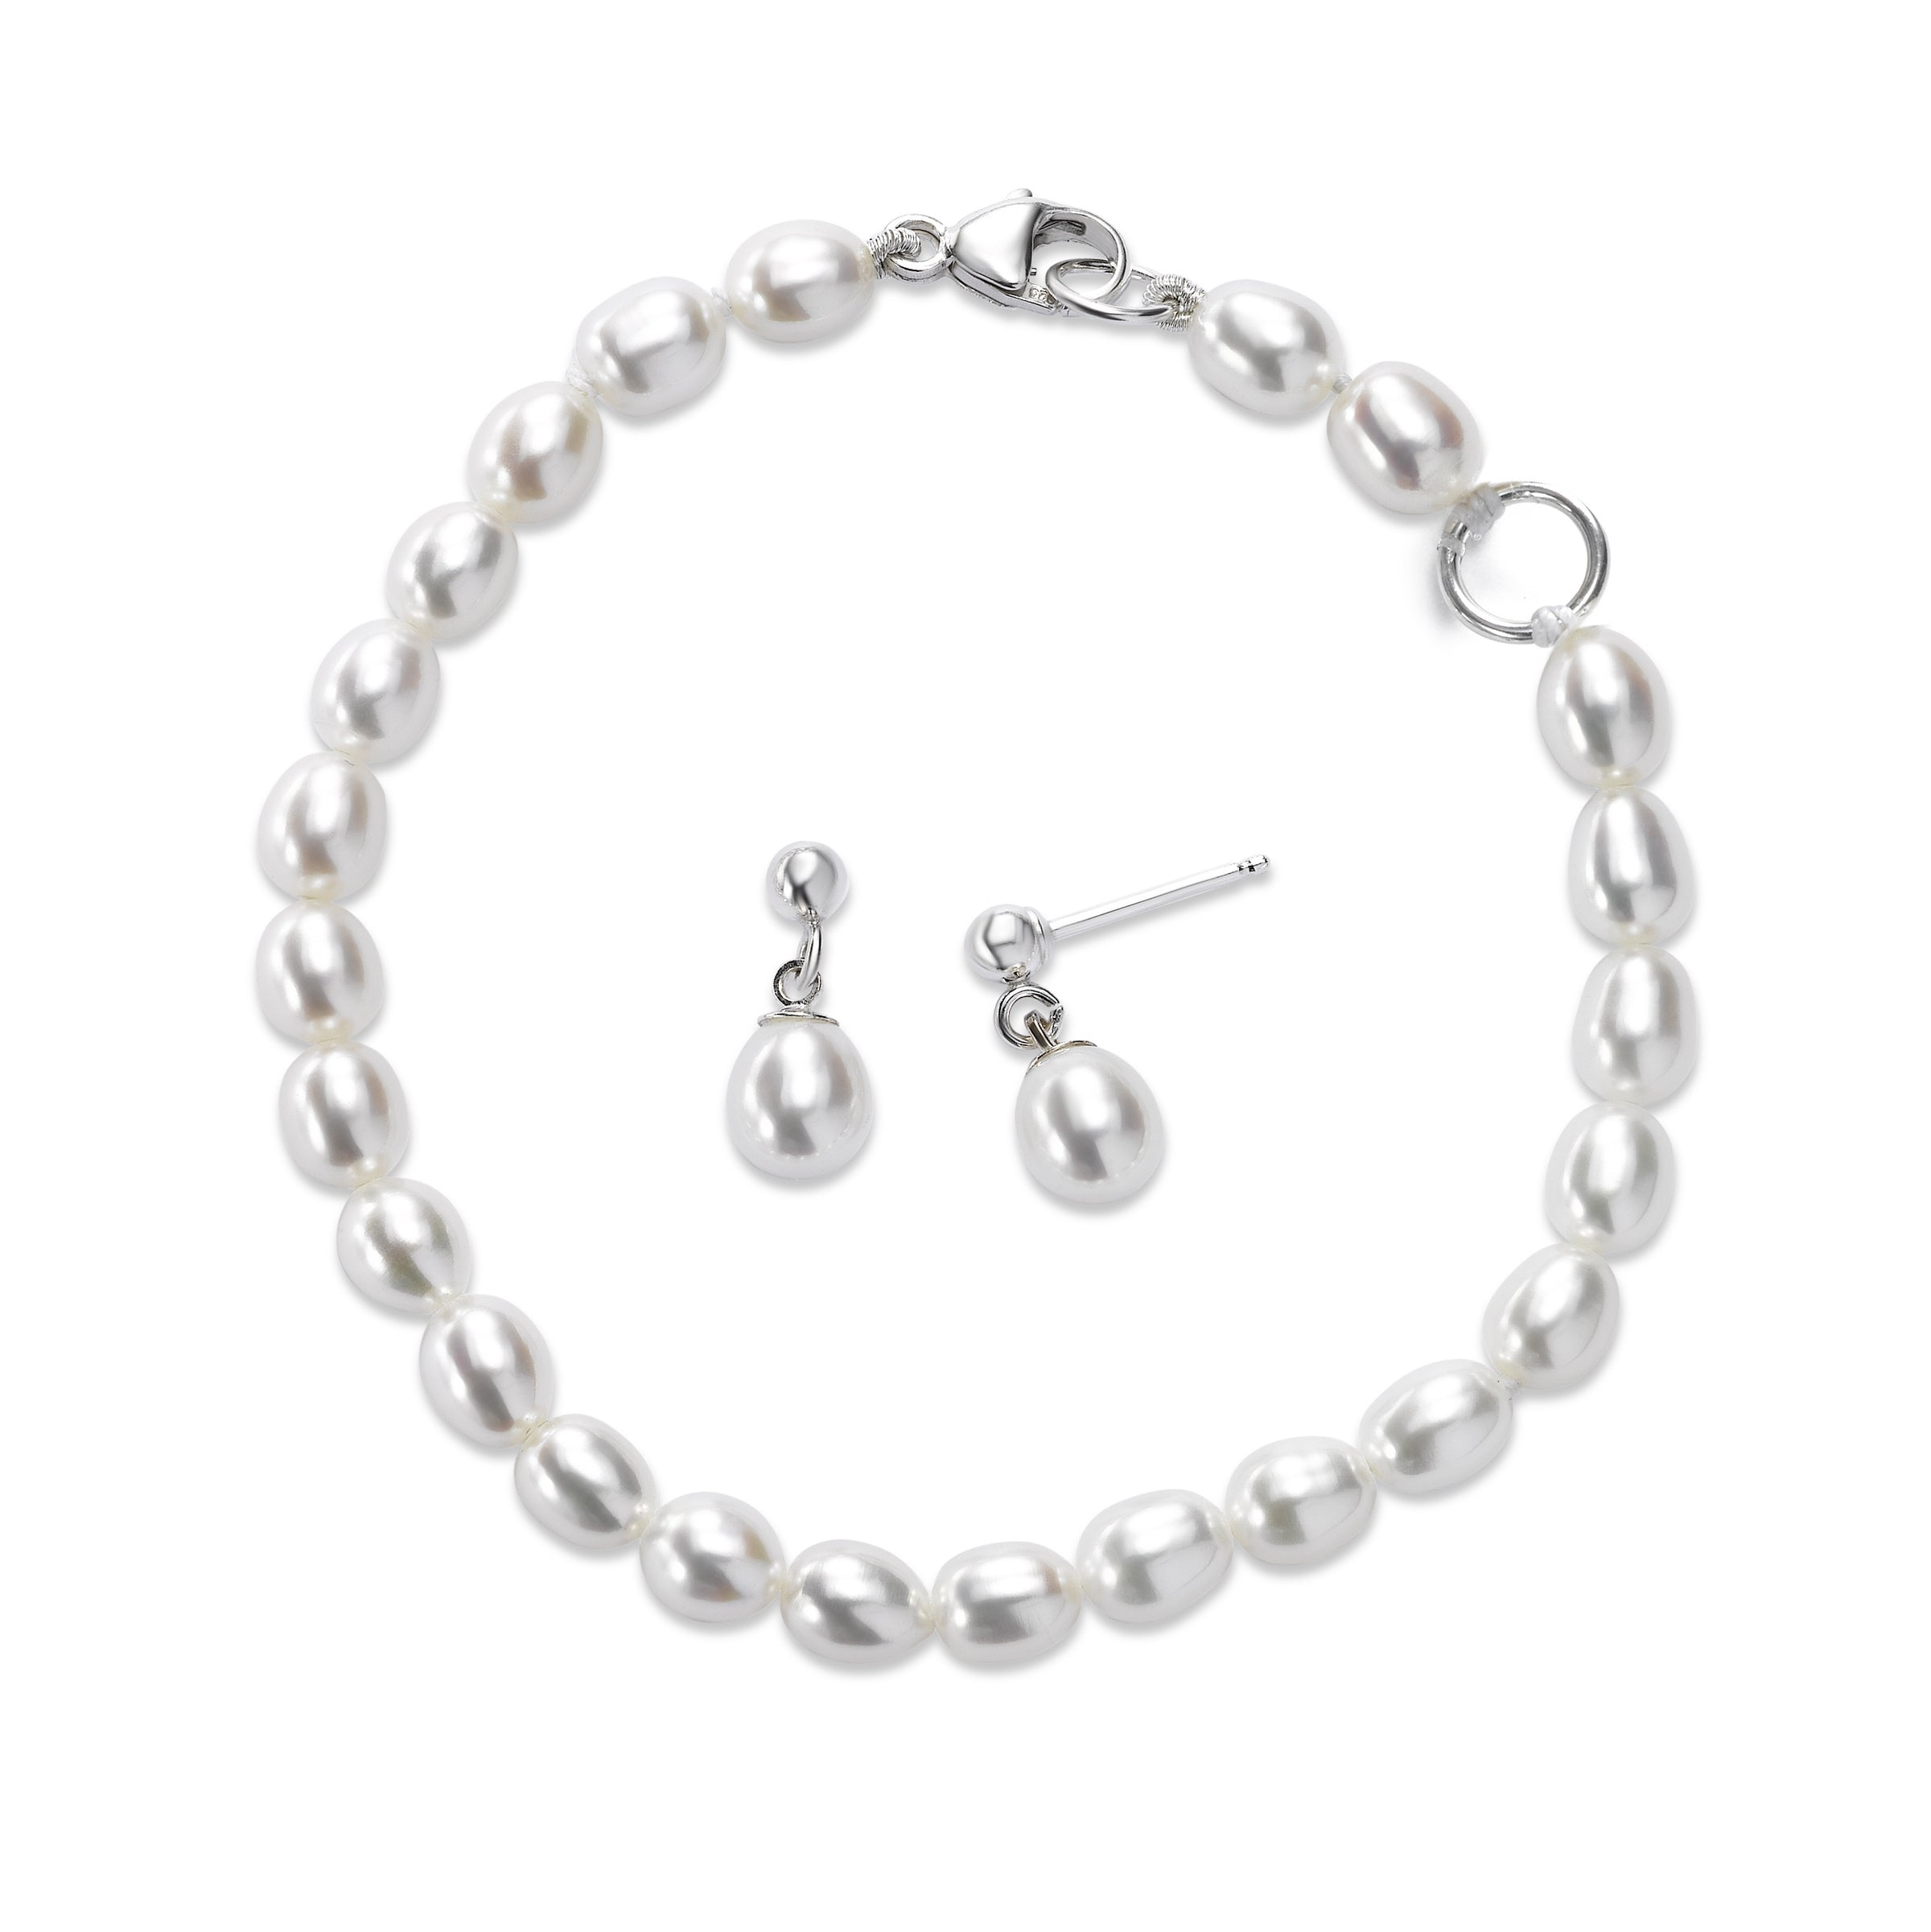 Child's Cultured Pearl Bracelet and Earrings Set, Sterling Silver